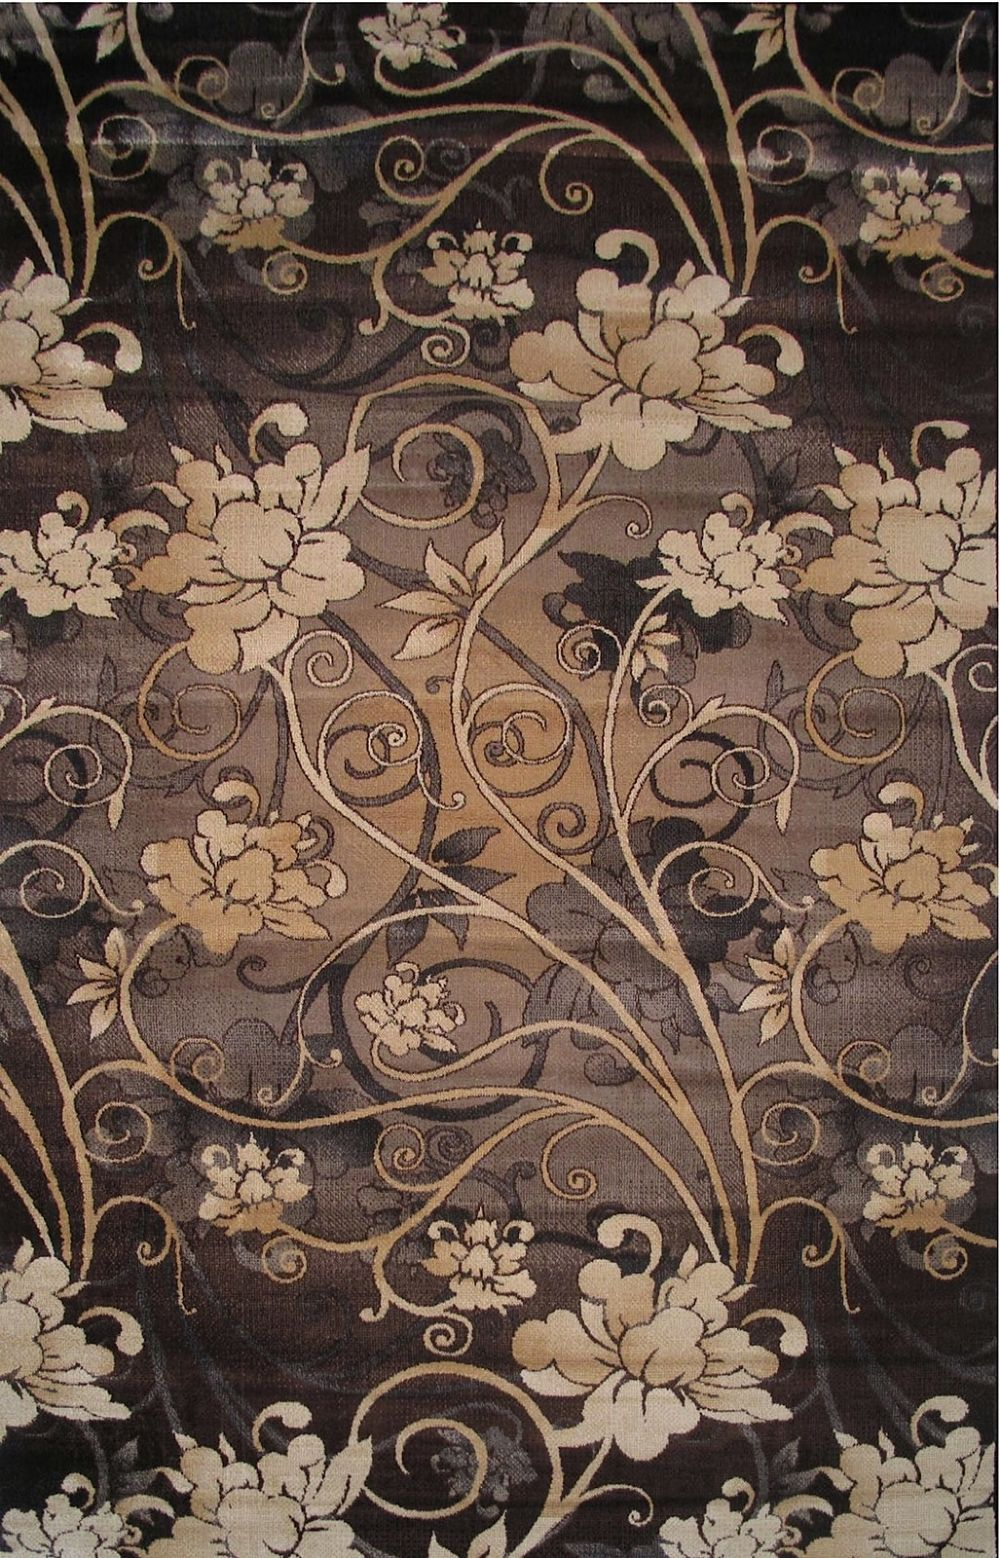 la rugs artifacts country & floral area rug collection